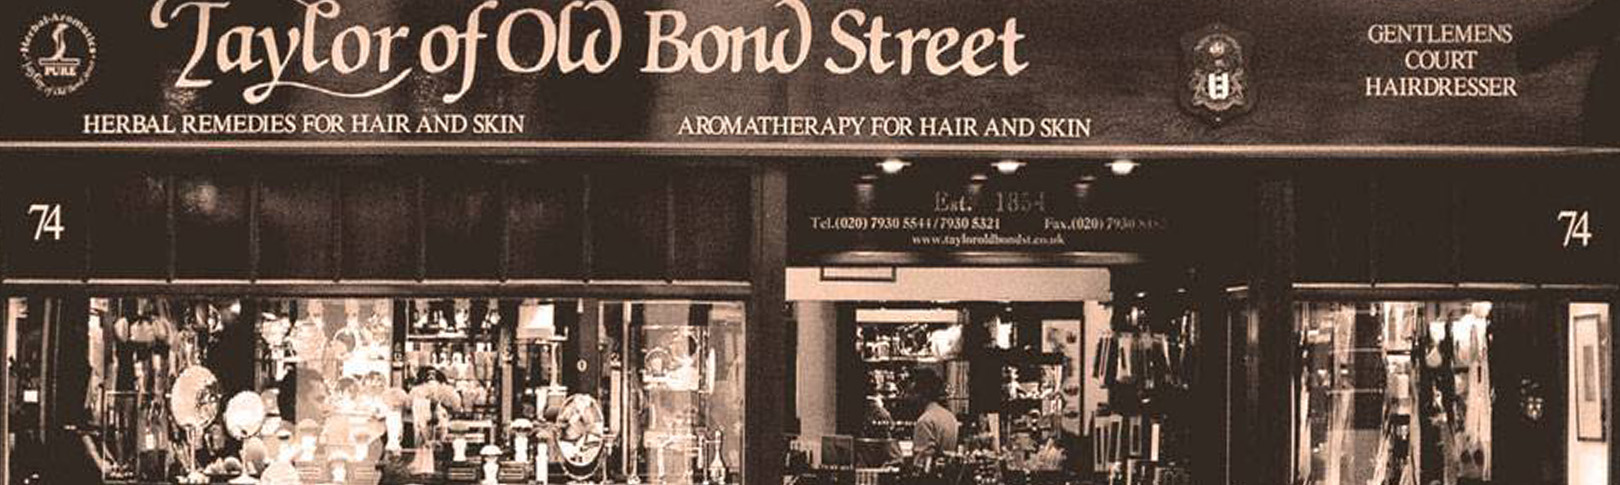 taylor-of-old-bond-street-stubbleandstrife.jpg